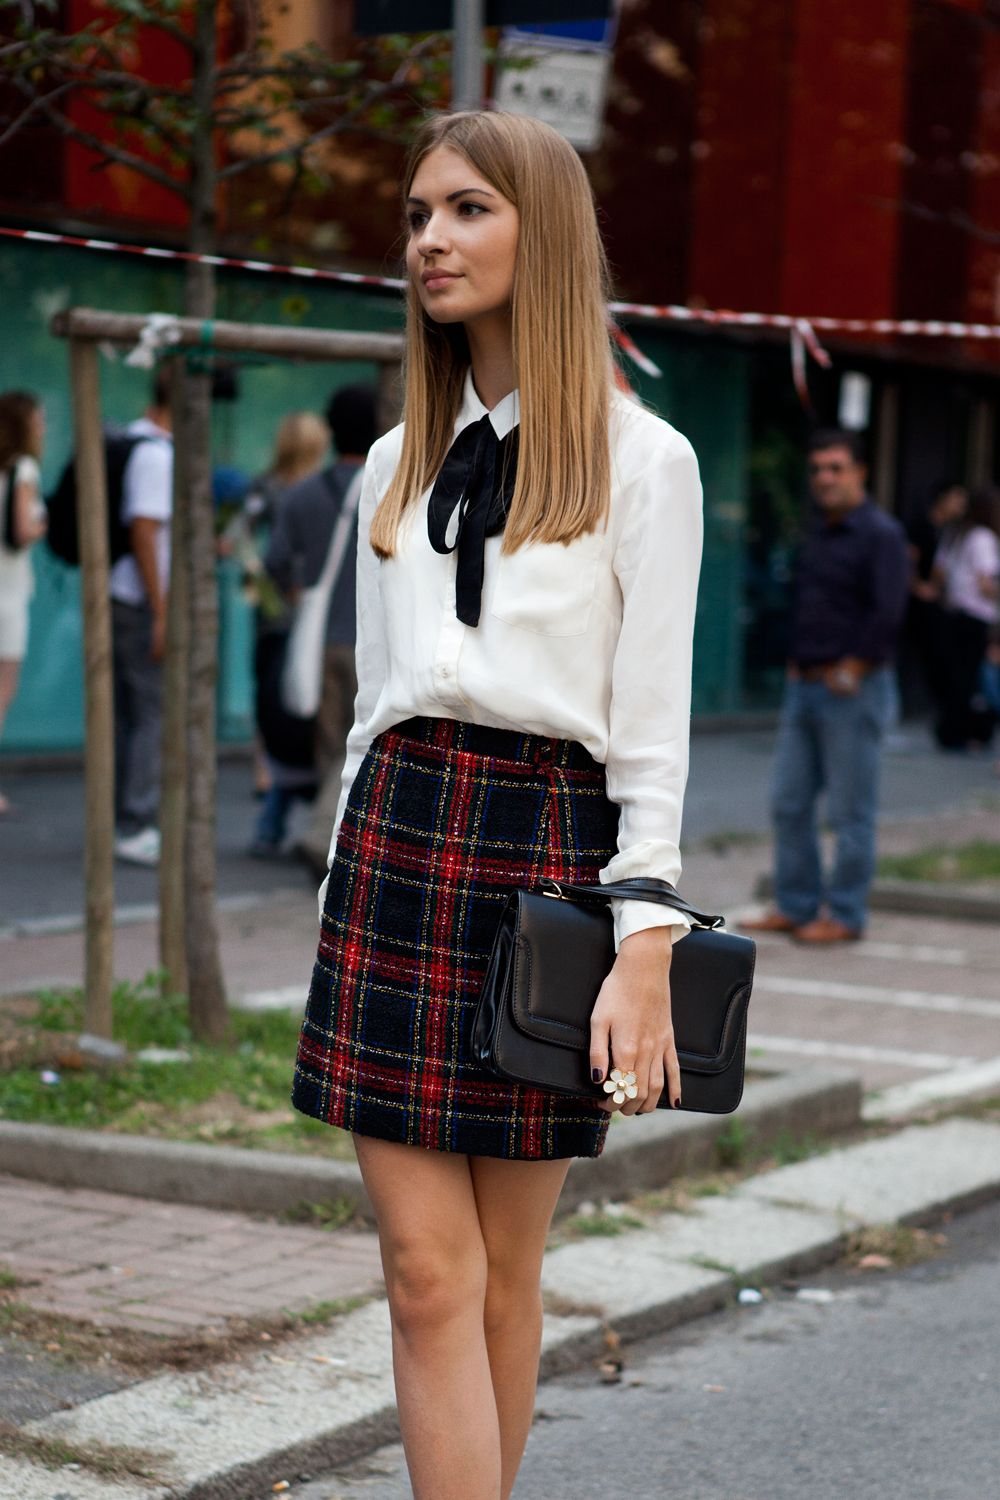 ad5542865 A tartan skirt with a white blouse shirt and neck tie. This back to school  outfit will make you look irresistible in your interview.